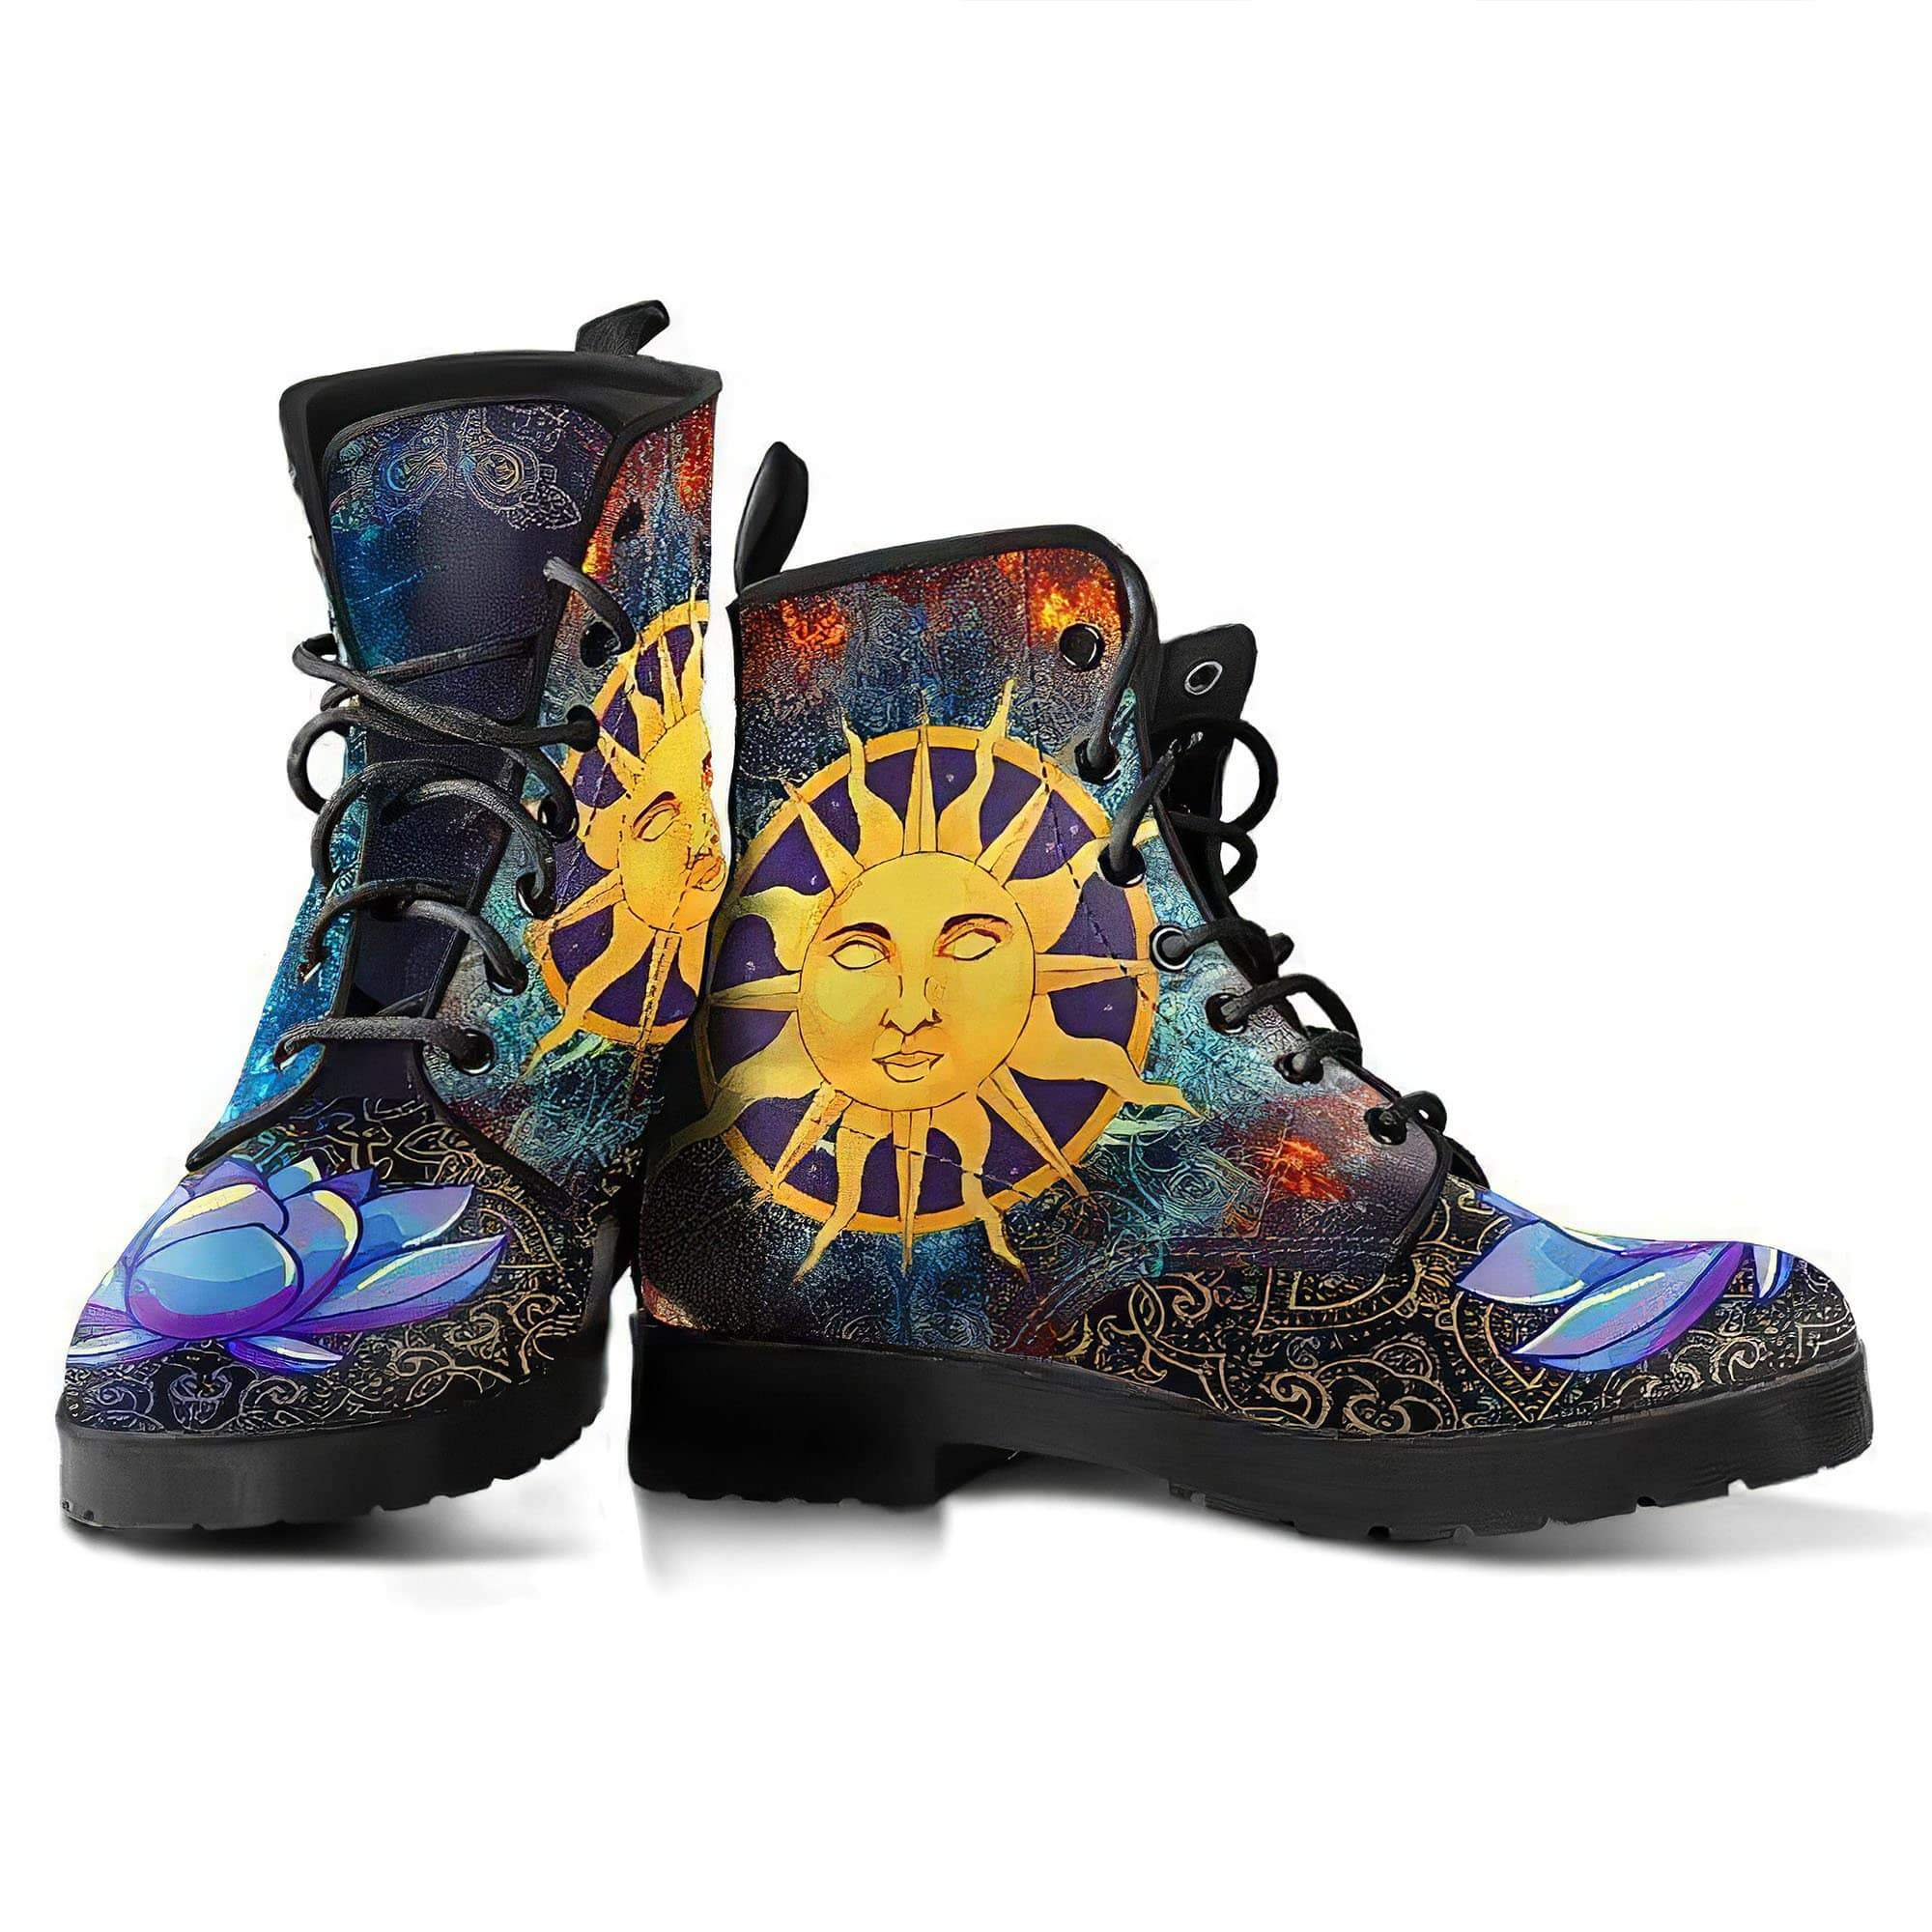 Sun & Moon Lotus Women's Boots Vegan Friendly Leather Women's Leather Boots